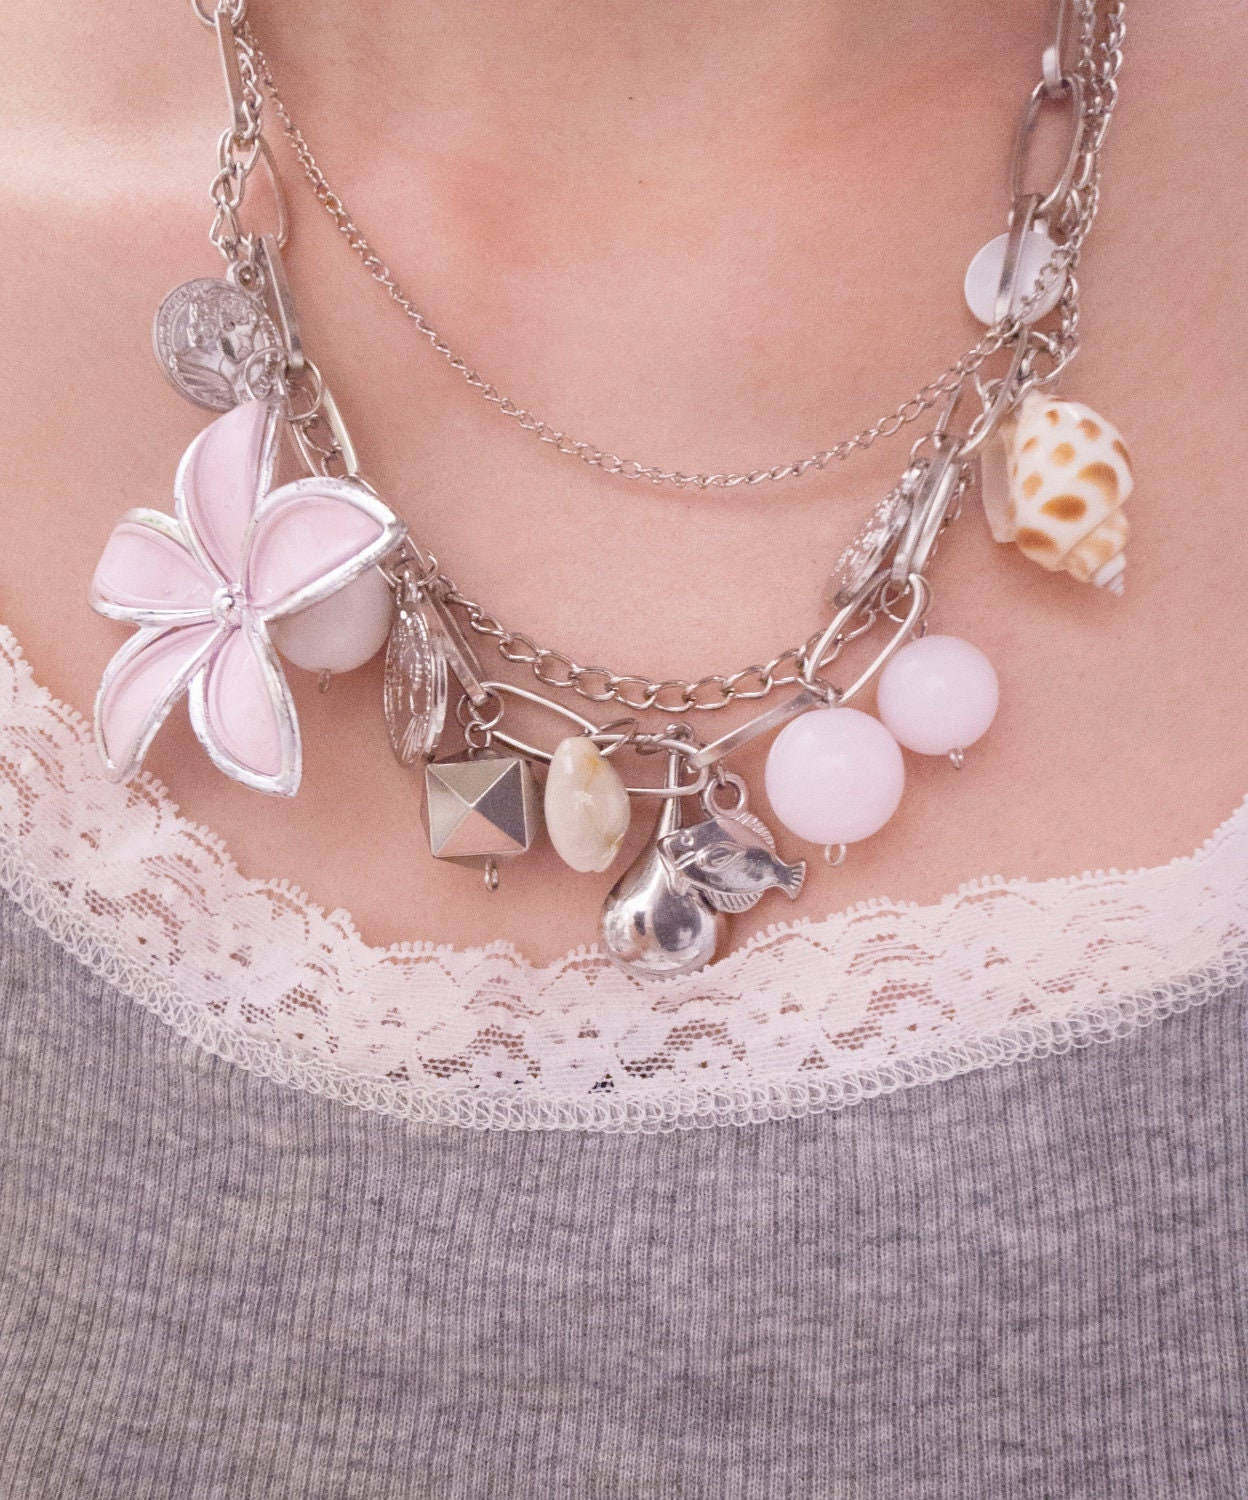 SALE-Chunky Charm Silver Plated and Pink Necklace for Summer